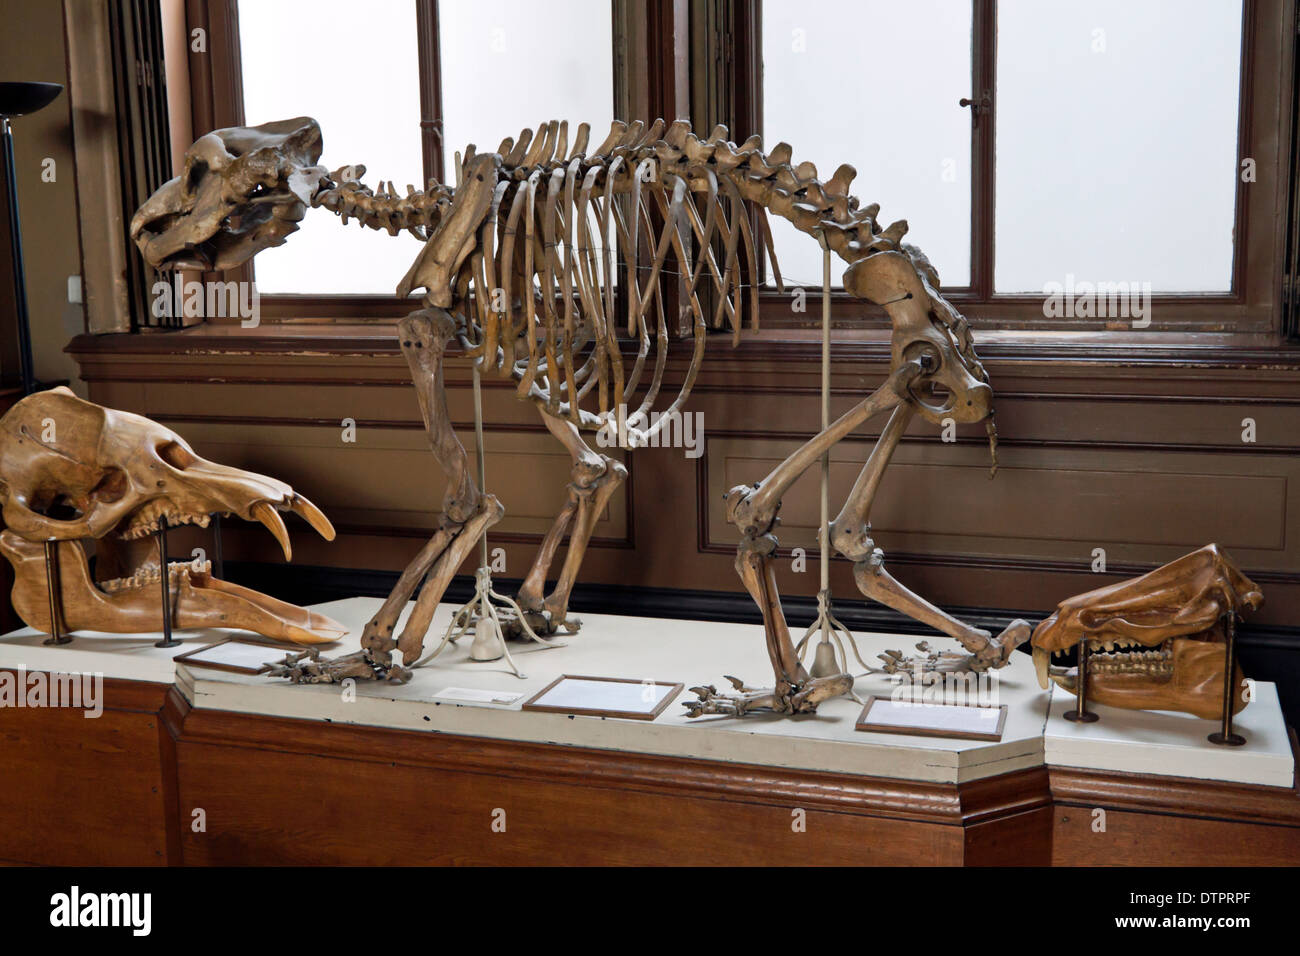 Skeleton of a cave bear at Teylers Museum, Haarlem, North Holland, The Netherlands - Stock Image